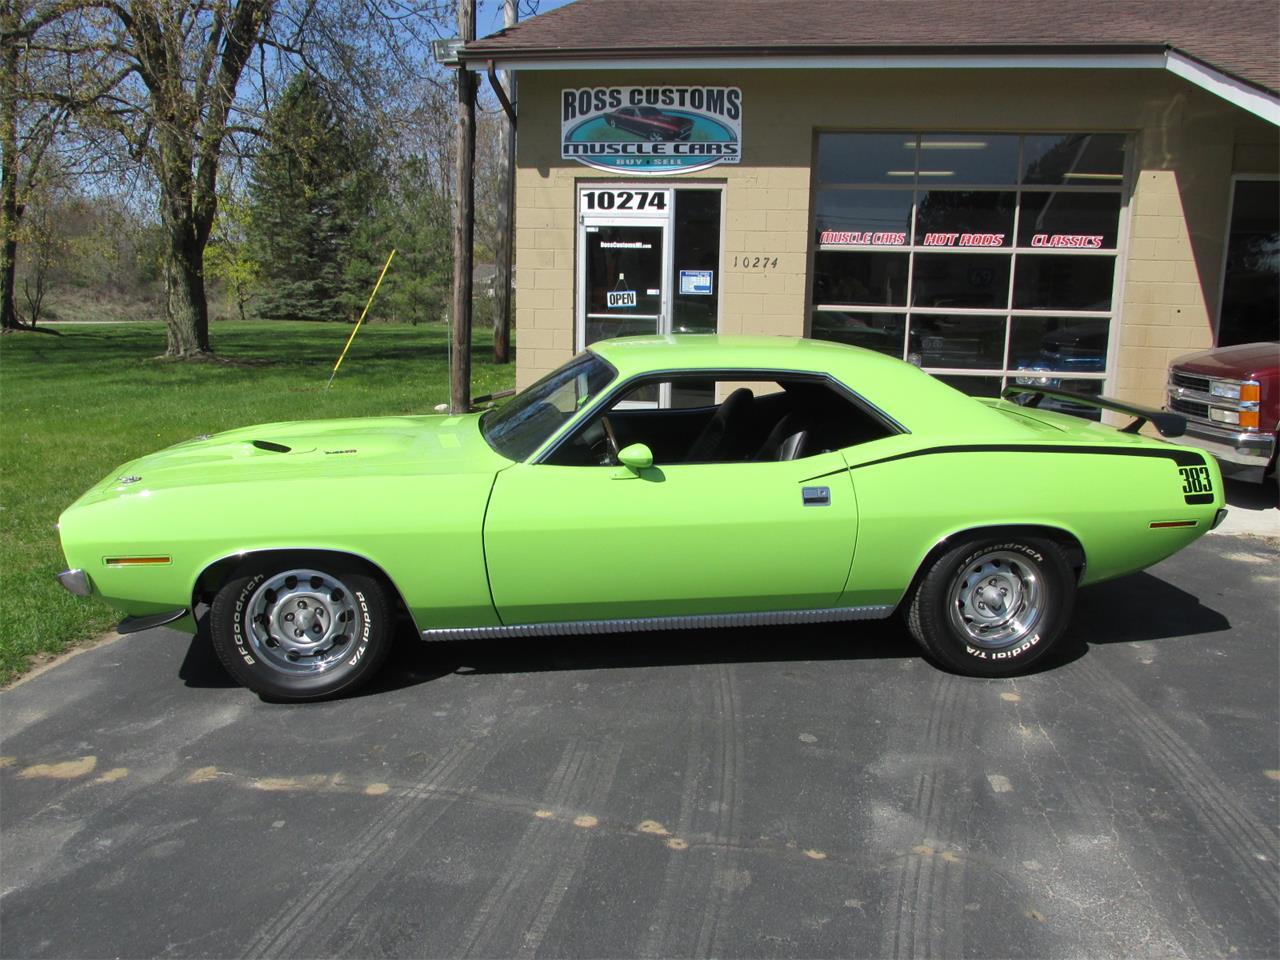 Large Picture of Classic 1970 Plymouth Cuda located in Goodrich Michigan - $43,900.00 - Q105